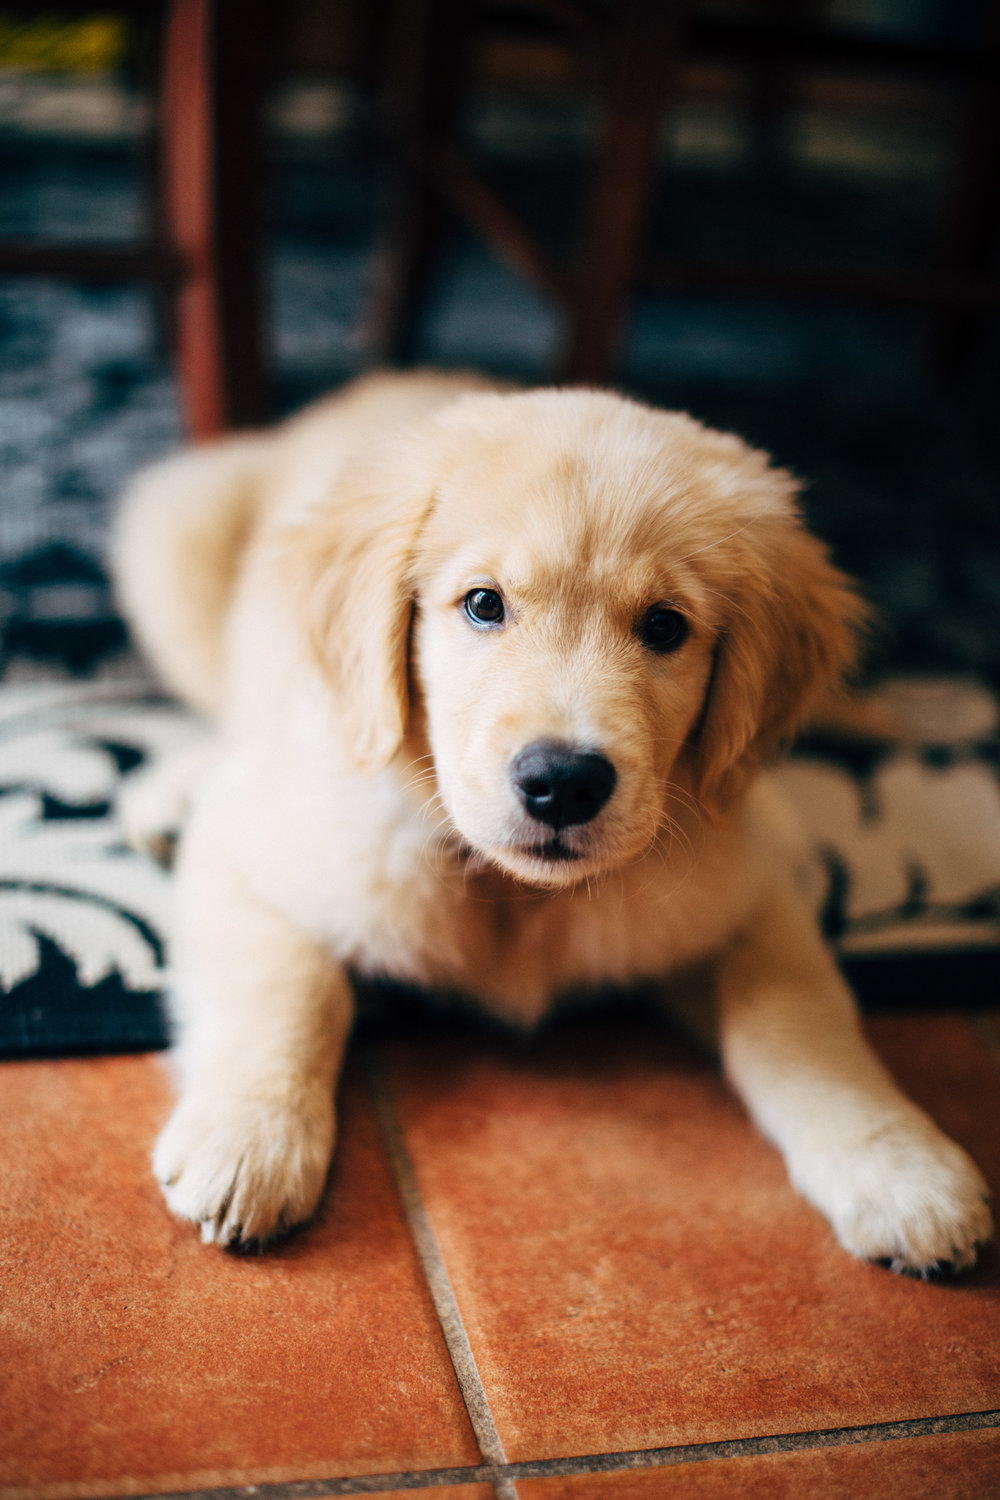 Henry the Golden Retriever Puppy lifestyle pet photography